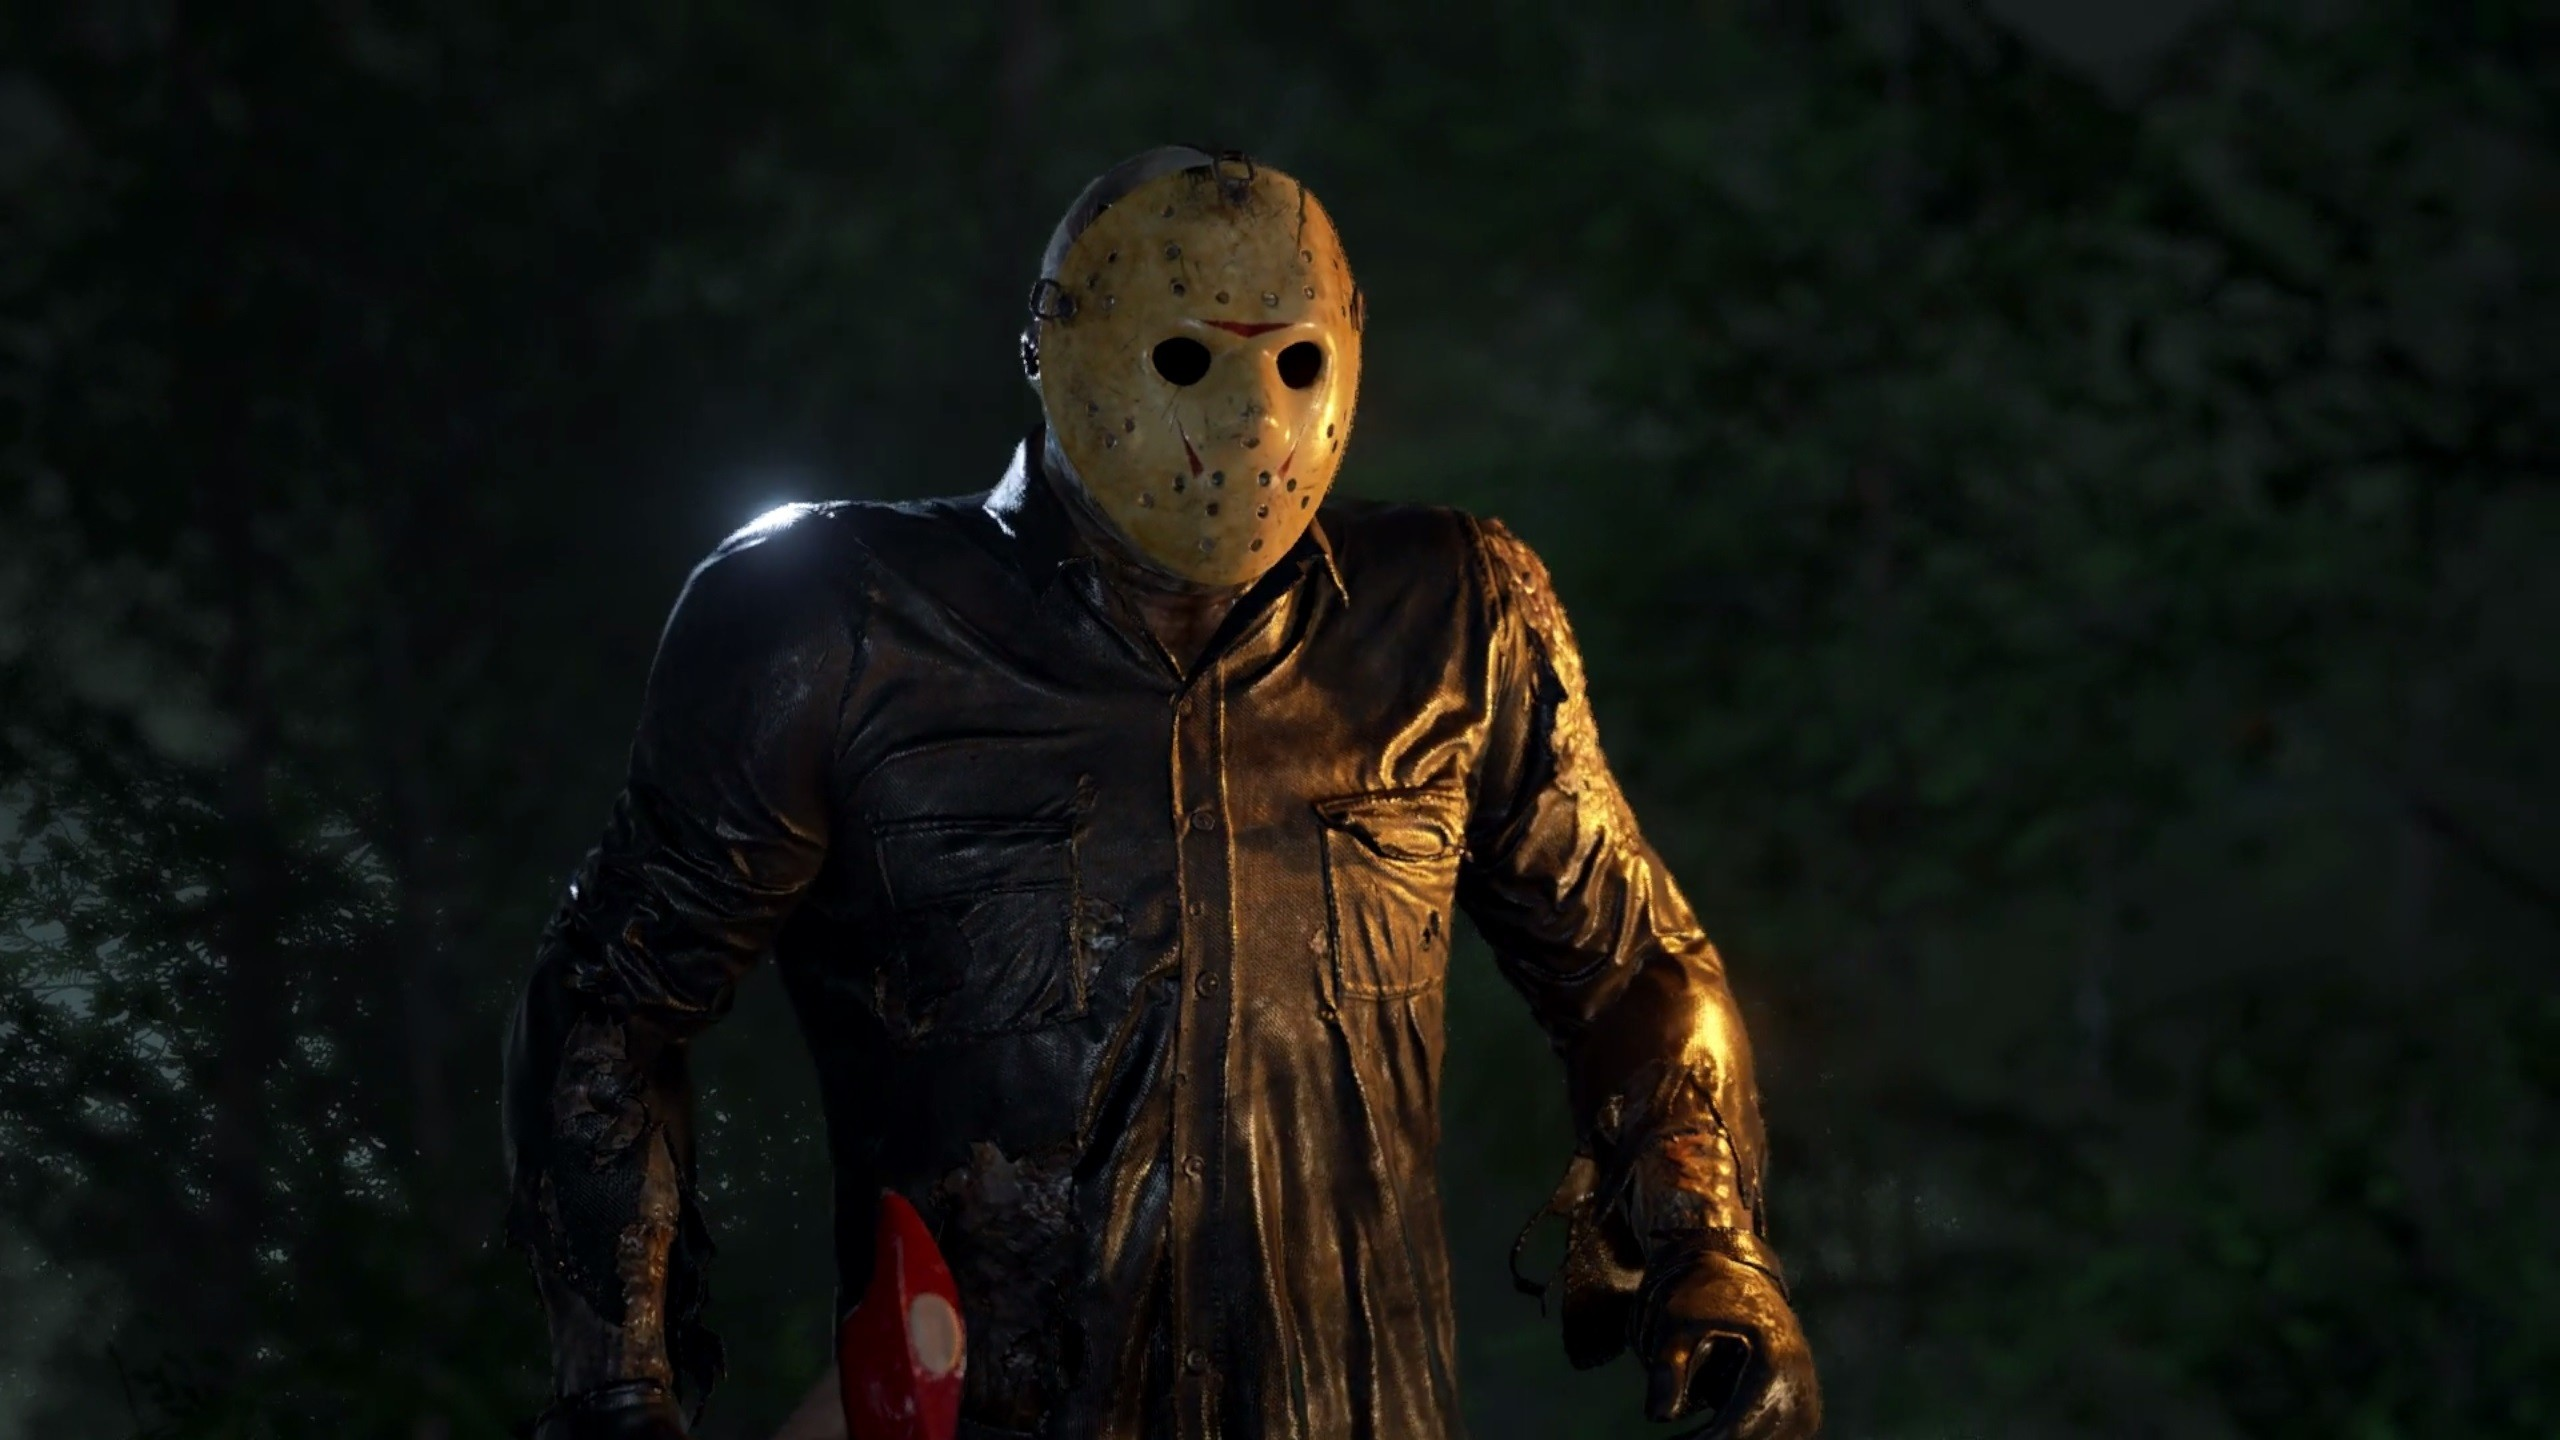 Kane Hodder in his first appearance as Jason Voorhees in Friday the 13th Part VII: The New Blood (1988)